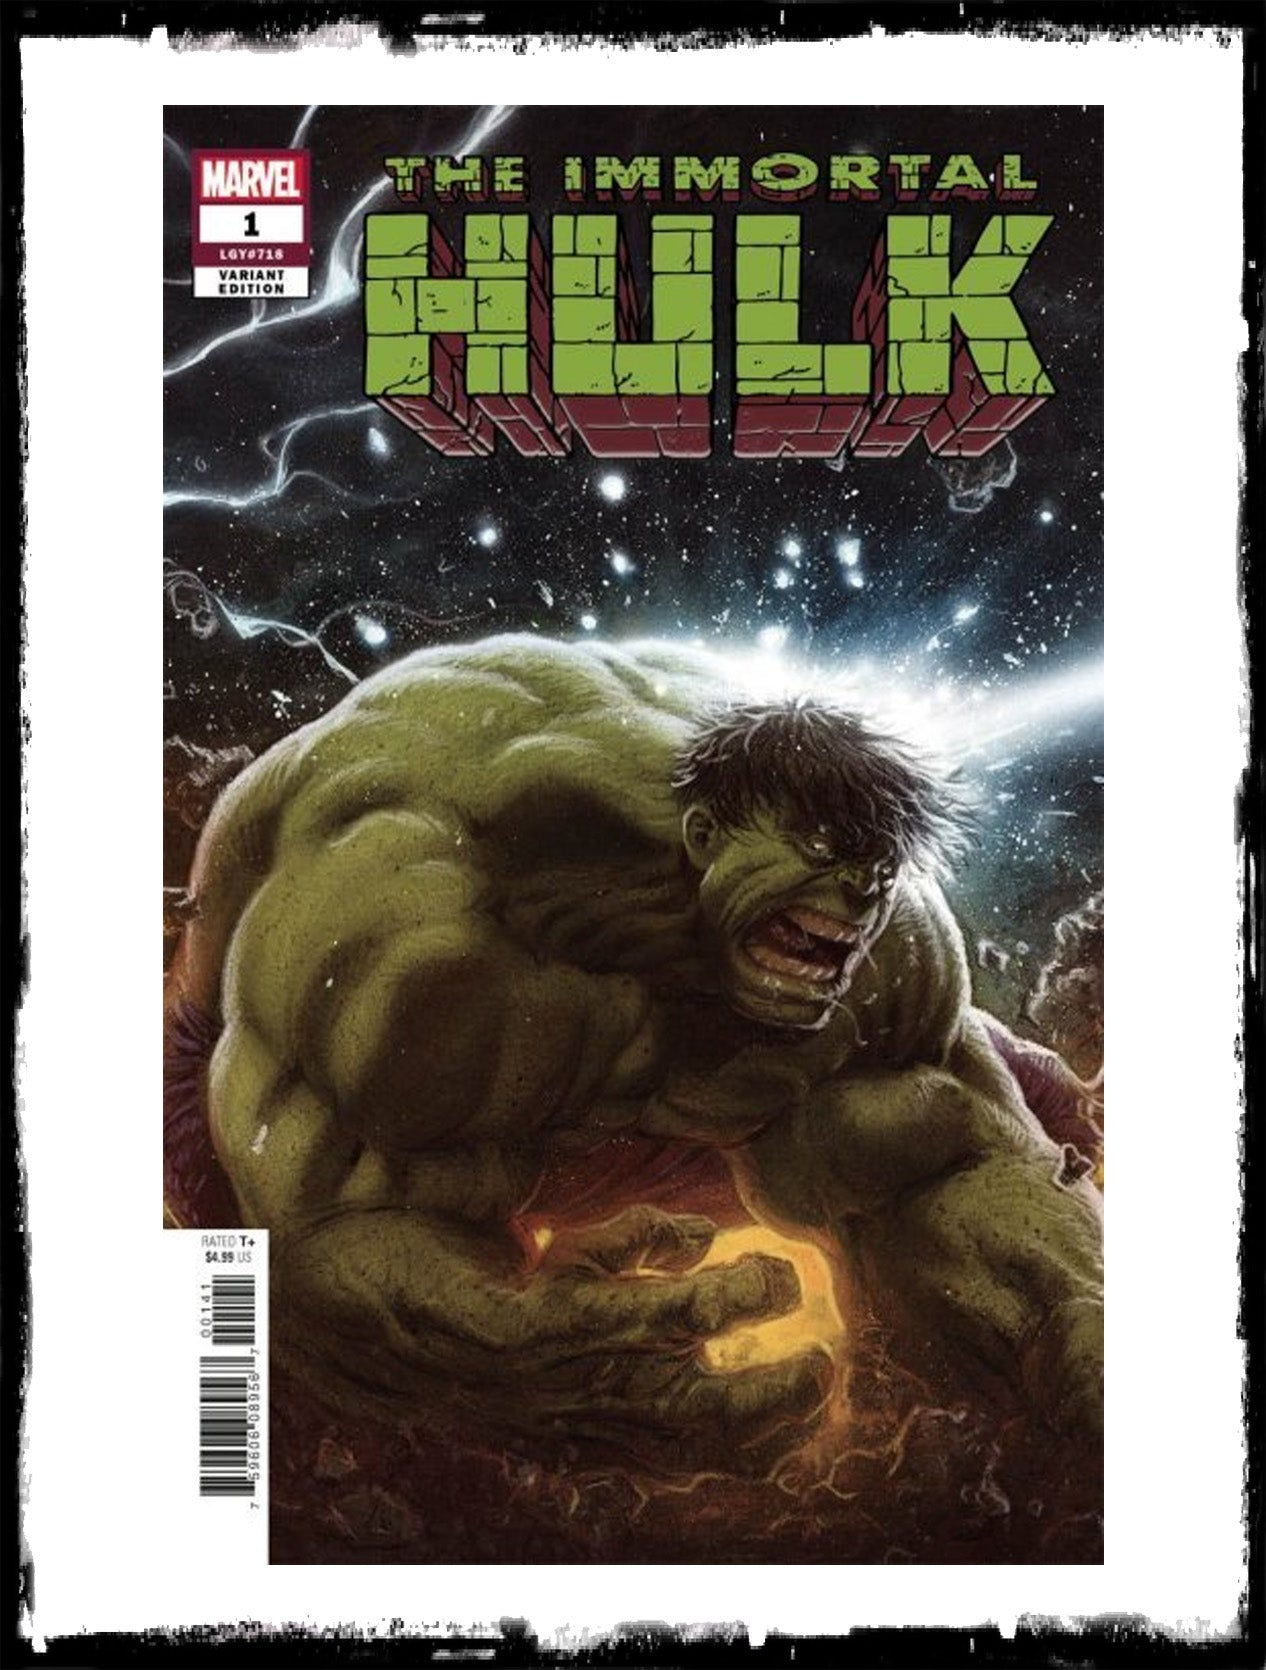 IMMORTAL HULK - #1 KAARE ANDREWS VARIANT (2018 - VF+/NM-)